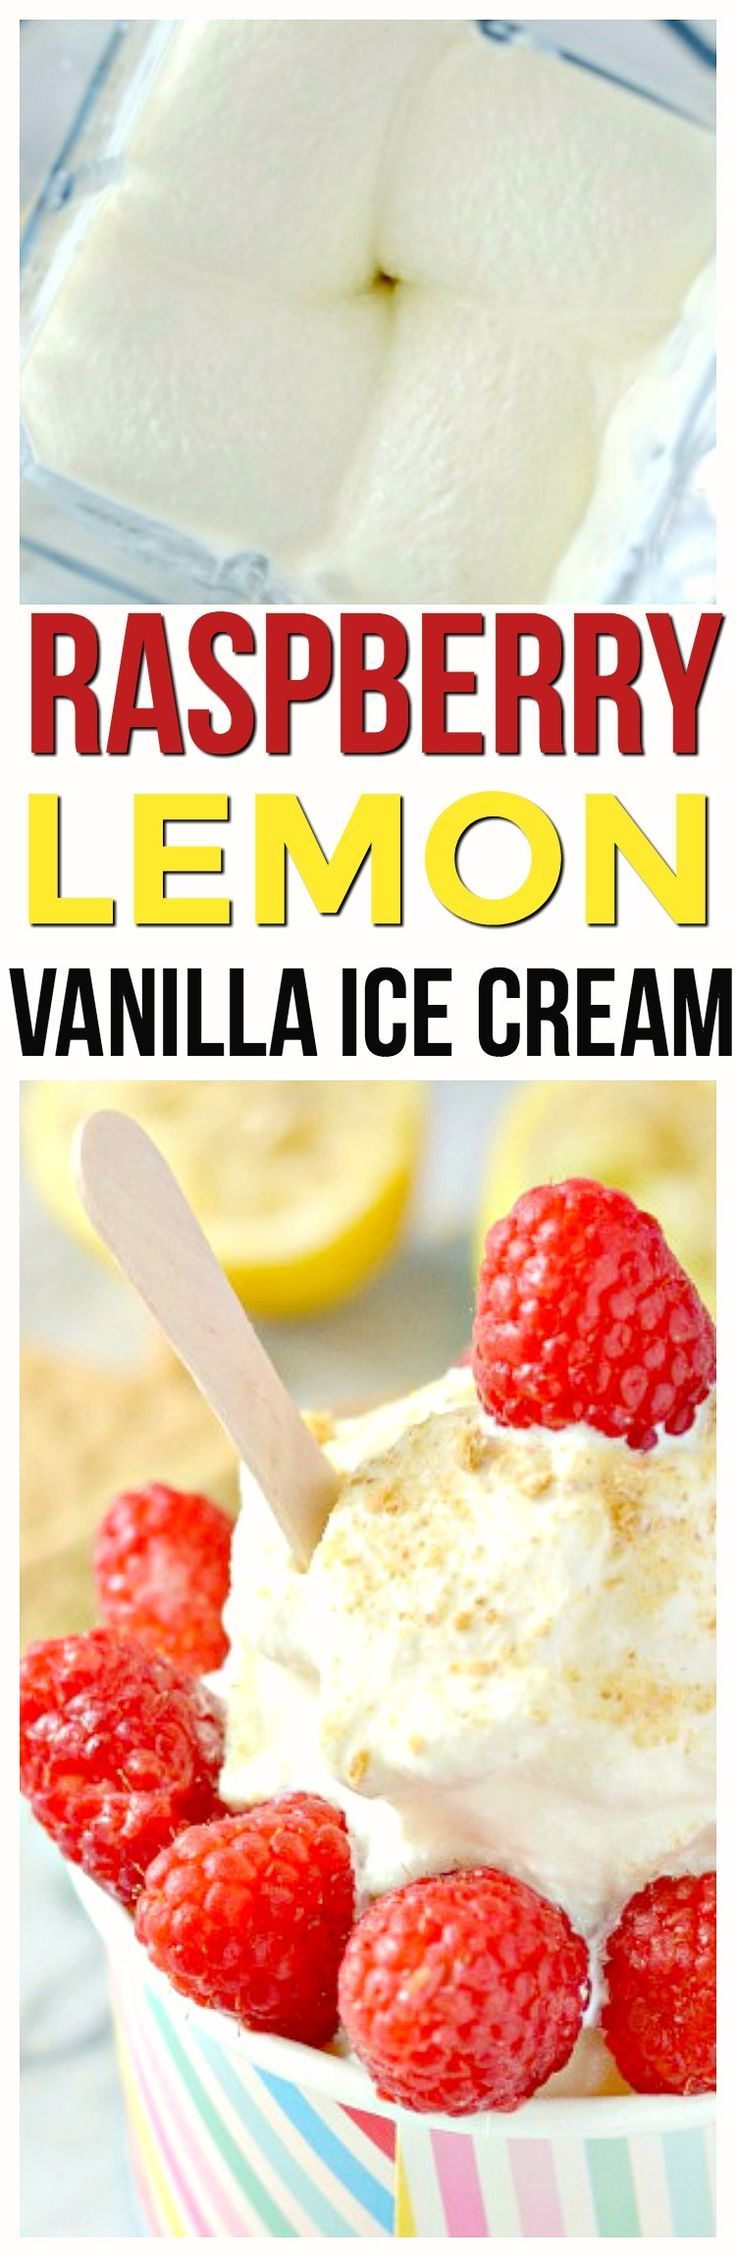 Raspberry Lemon Ice Cream Recipe blender ice cream healthy treat that is a no cook ice cream recipe. Perfect dessert for the whole family. No Cook No Eggs via @KnowYourProduce